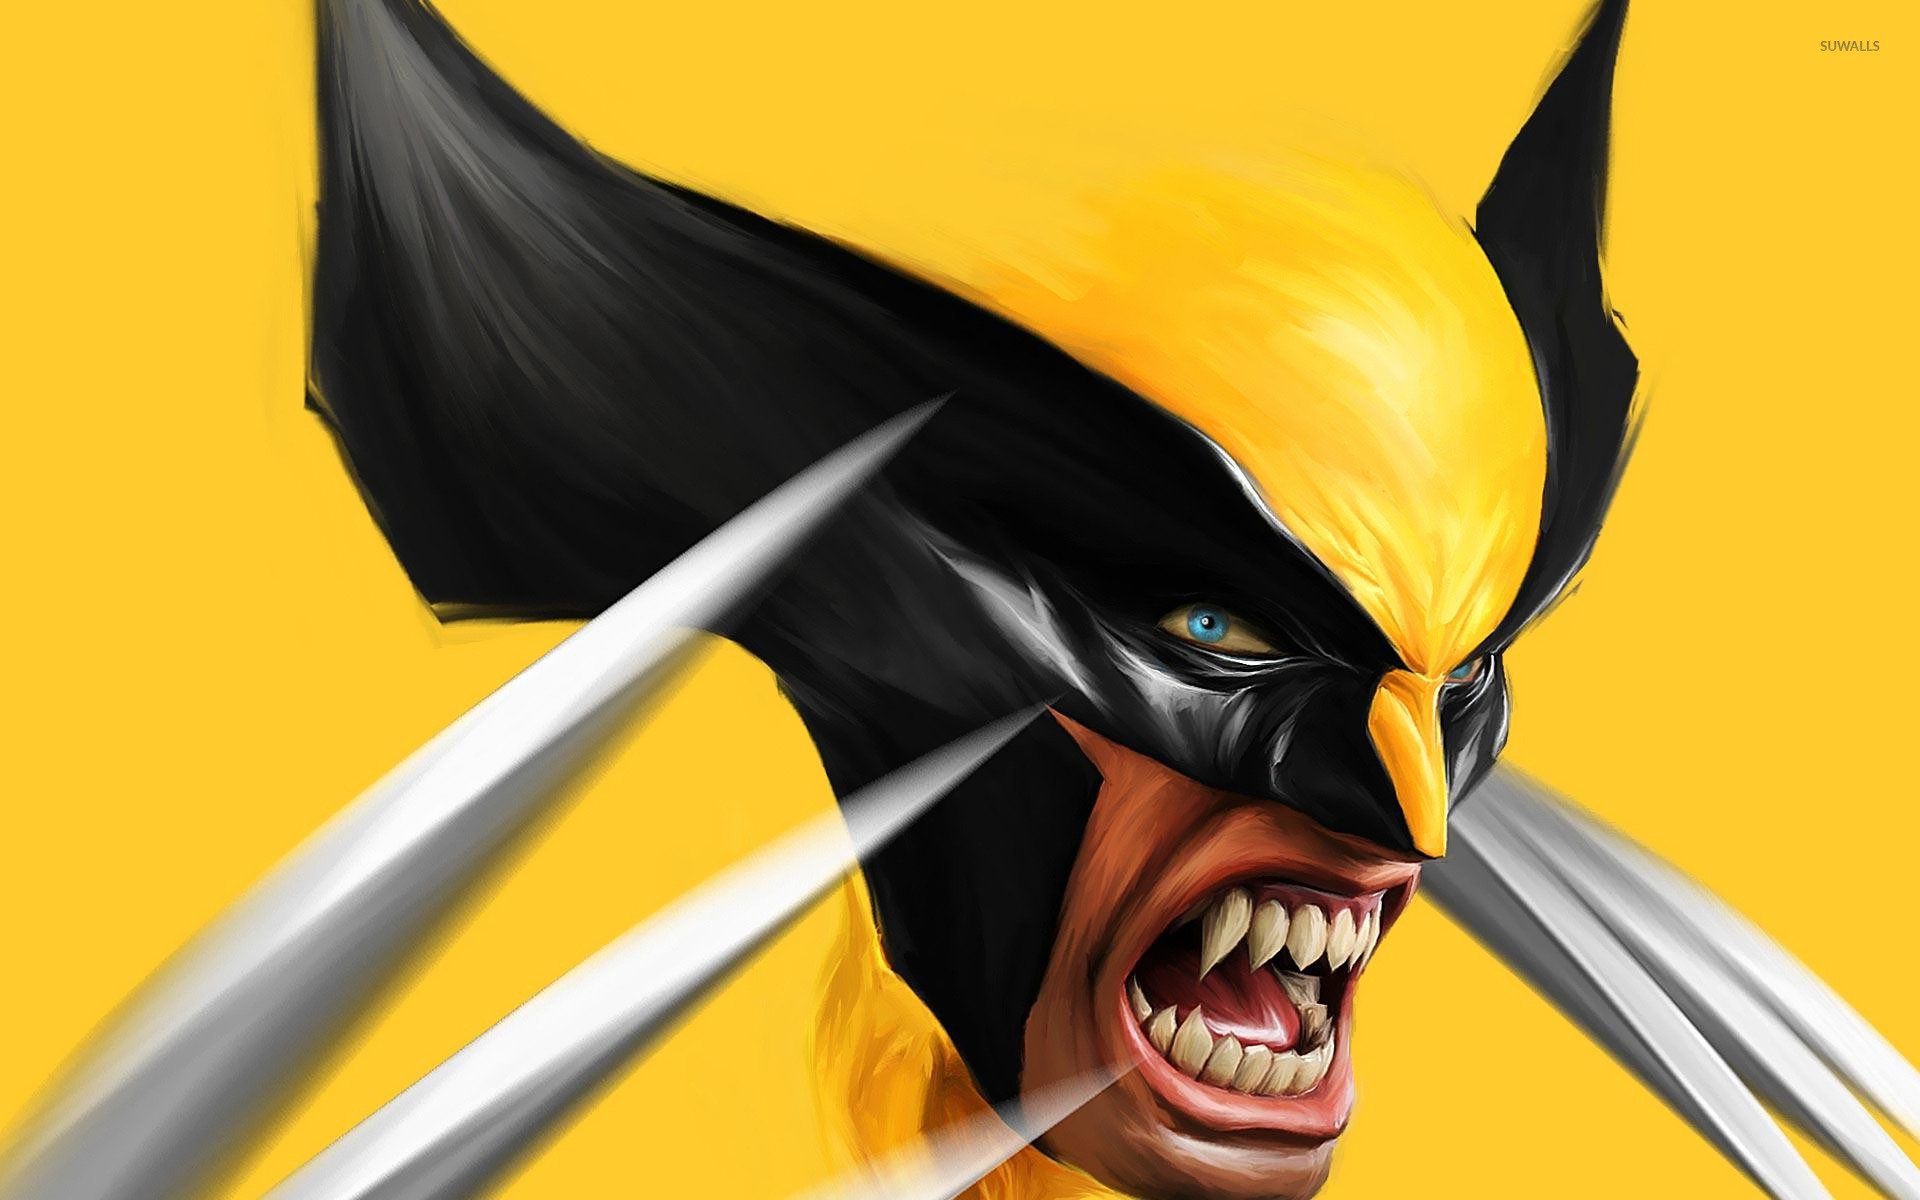 Free Download Wolverine Wallpaper Comic Wallpapers 16112 1920x1200 For Your Desktop Mobile Tablet Explore 73 Wolverine Marvel Wallpaper Wolverine Wallpapers Wolverine Wallpapers Hd